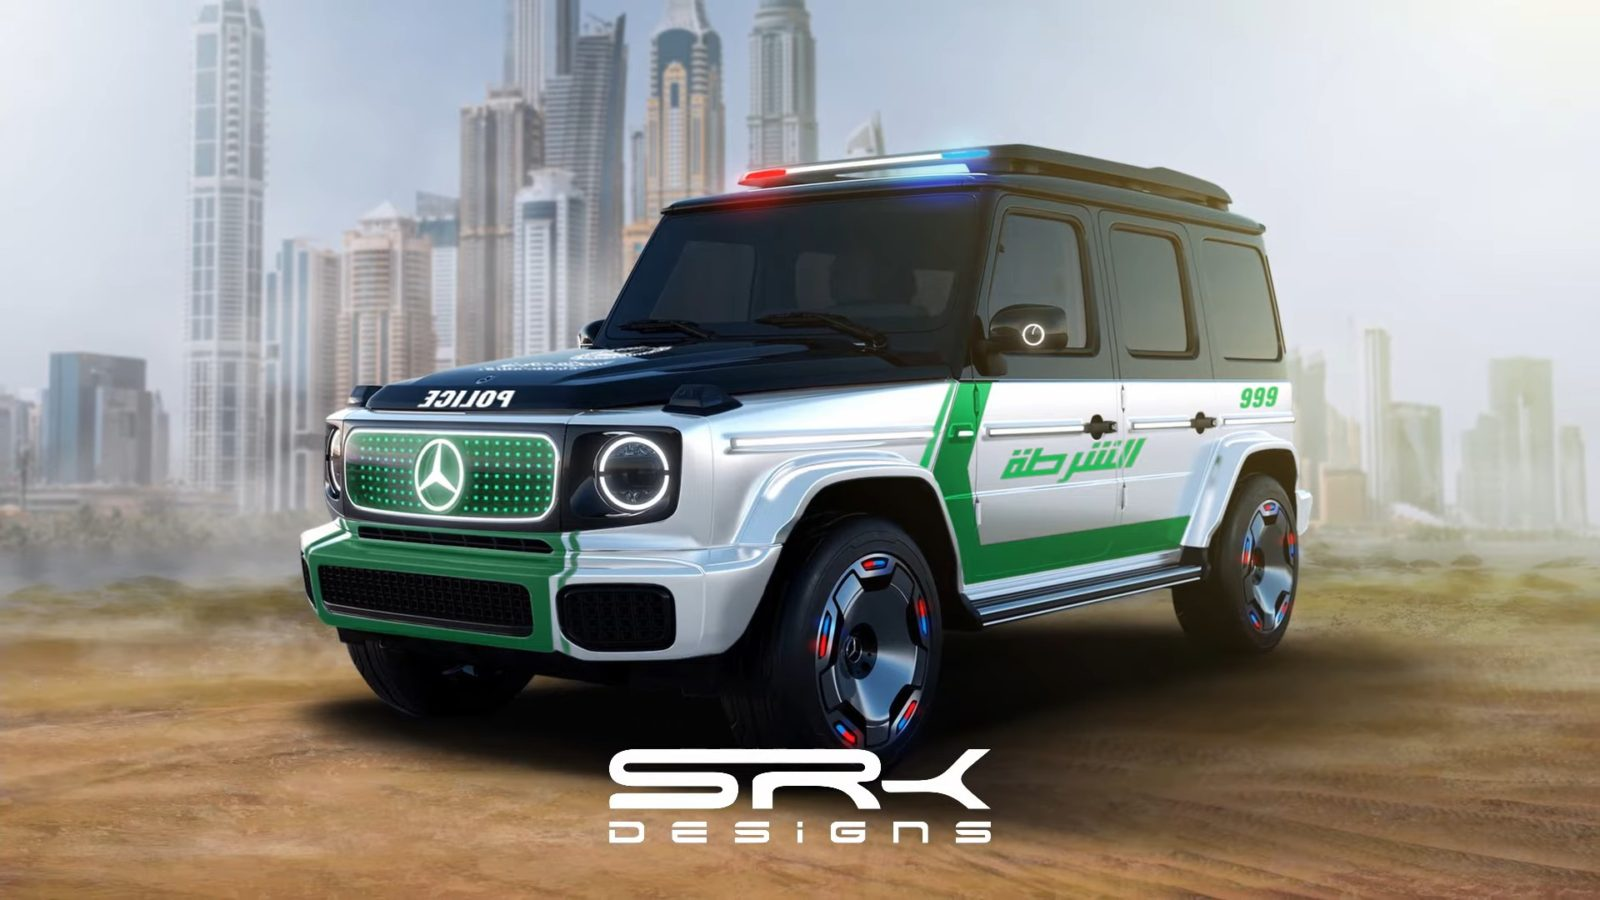 mercedes-benz-eqg-looks-ready-to-fight-digital-crime,-adopts-dubai-police-livery